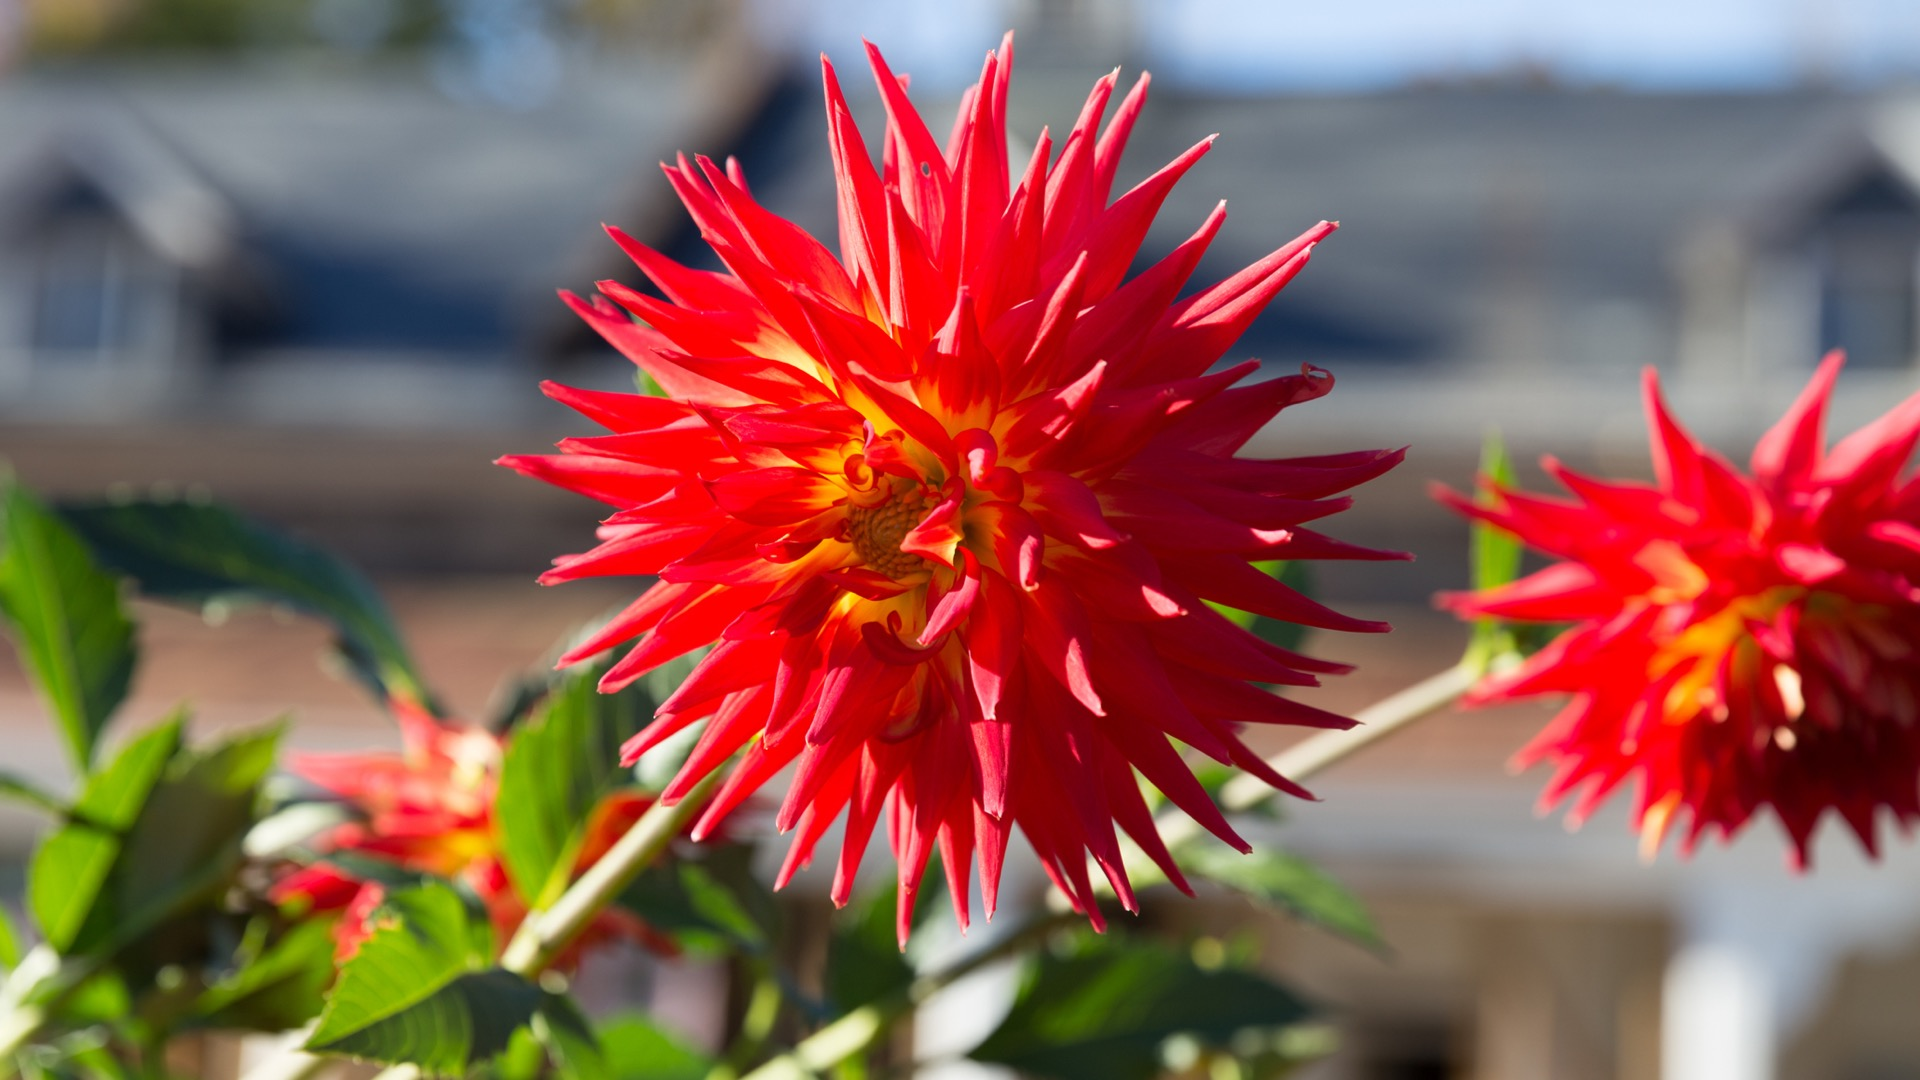 A red flower | Cylburn Arboretum in Baltimore